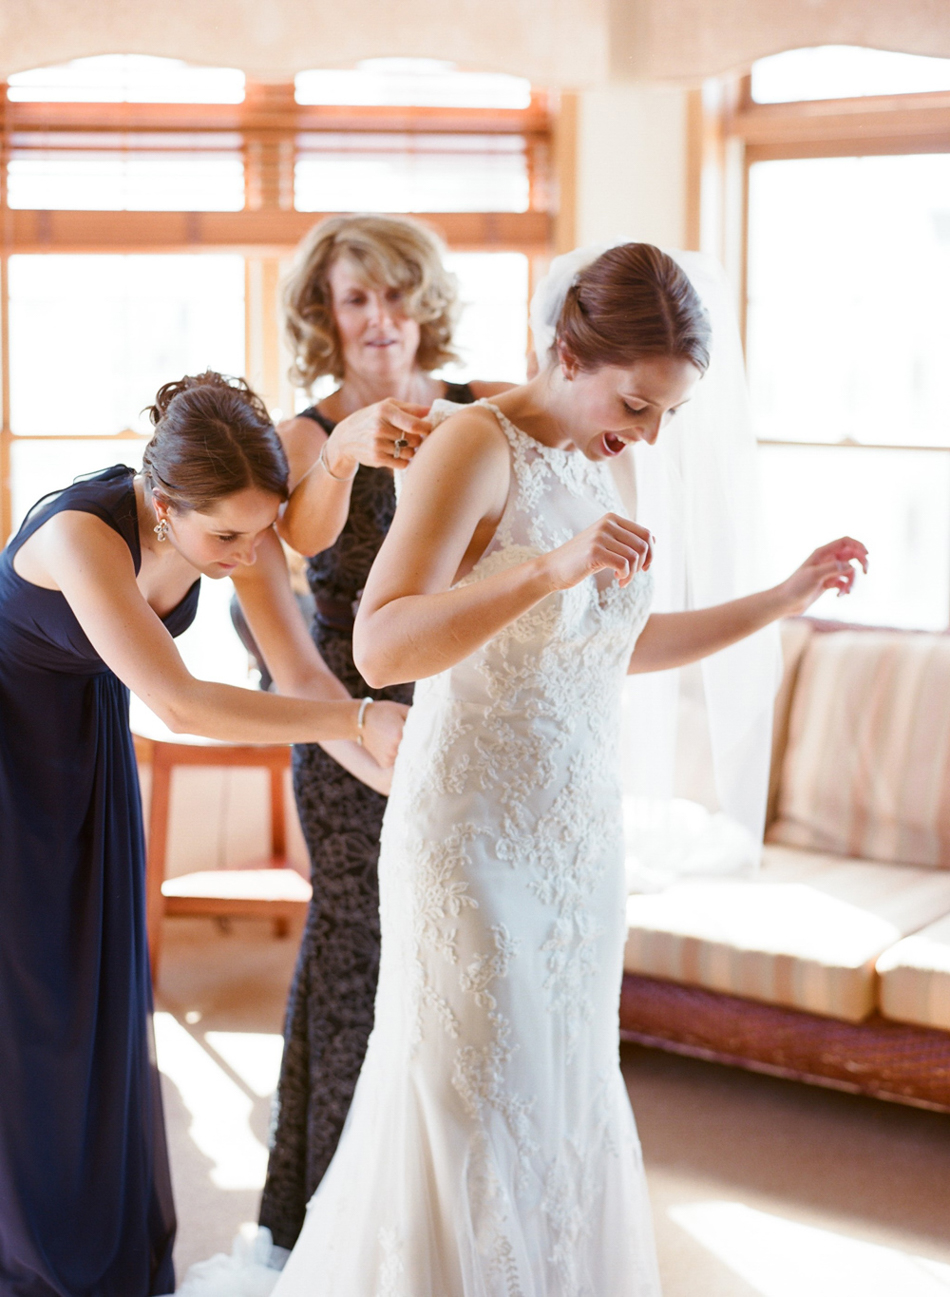 Elkhart_Lake_Wedding_Photographer_003.jpg